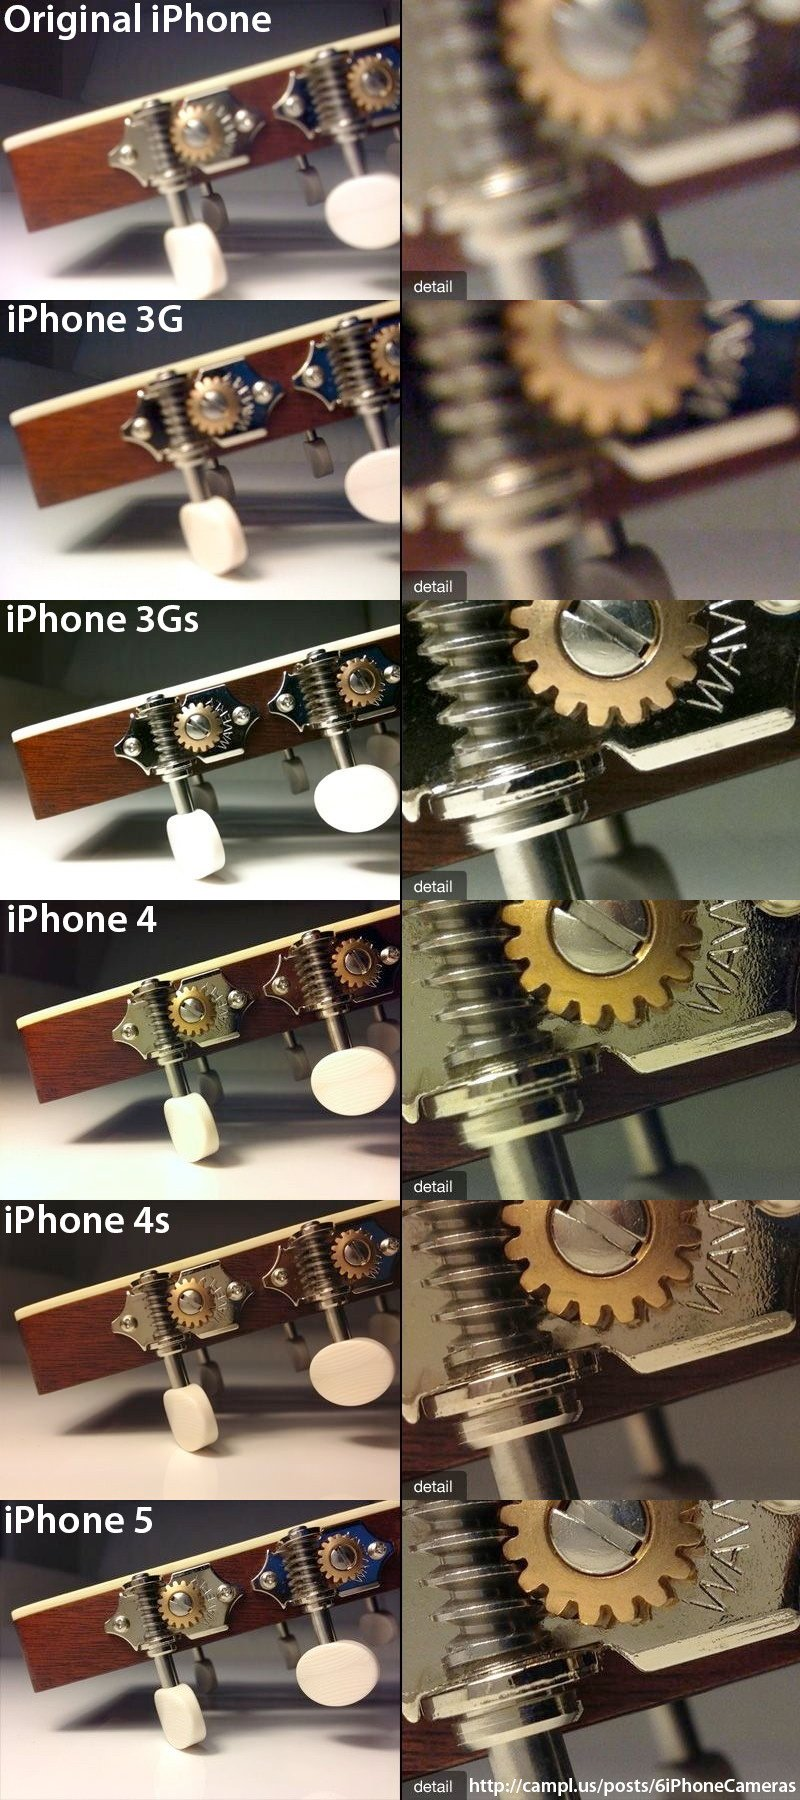 comparaison-photos-iphone-guitare